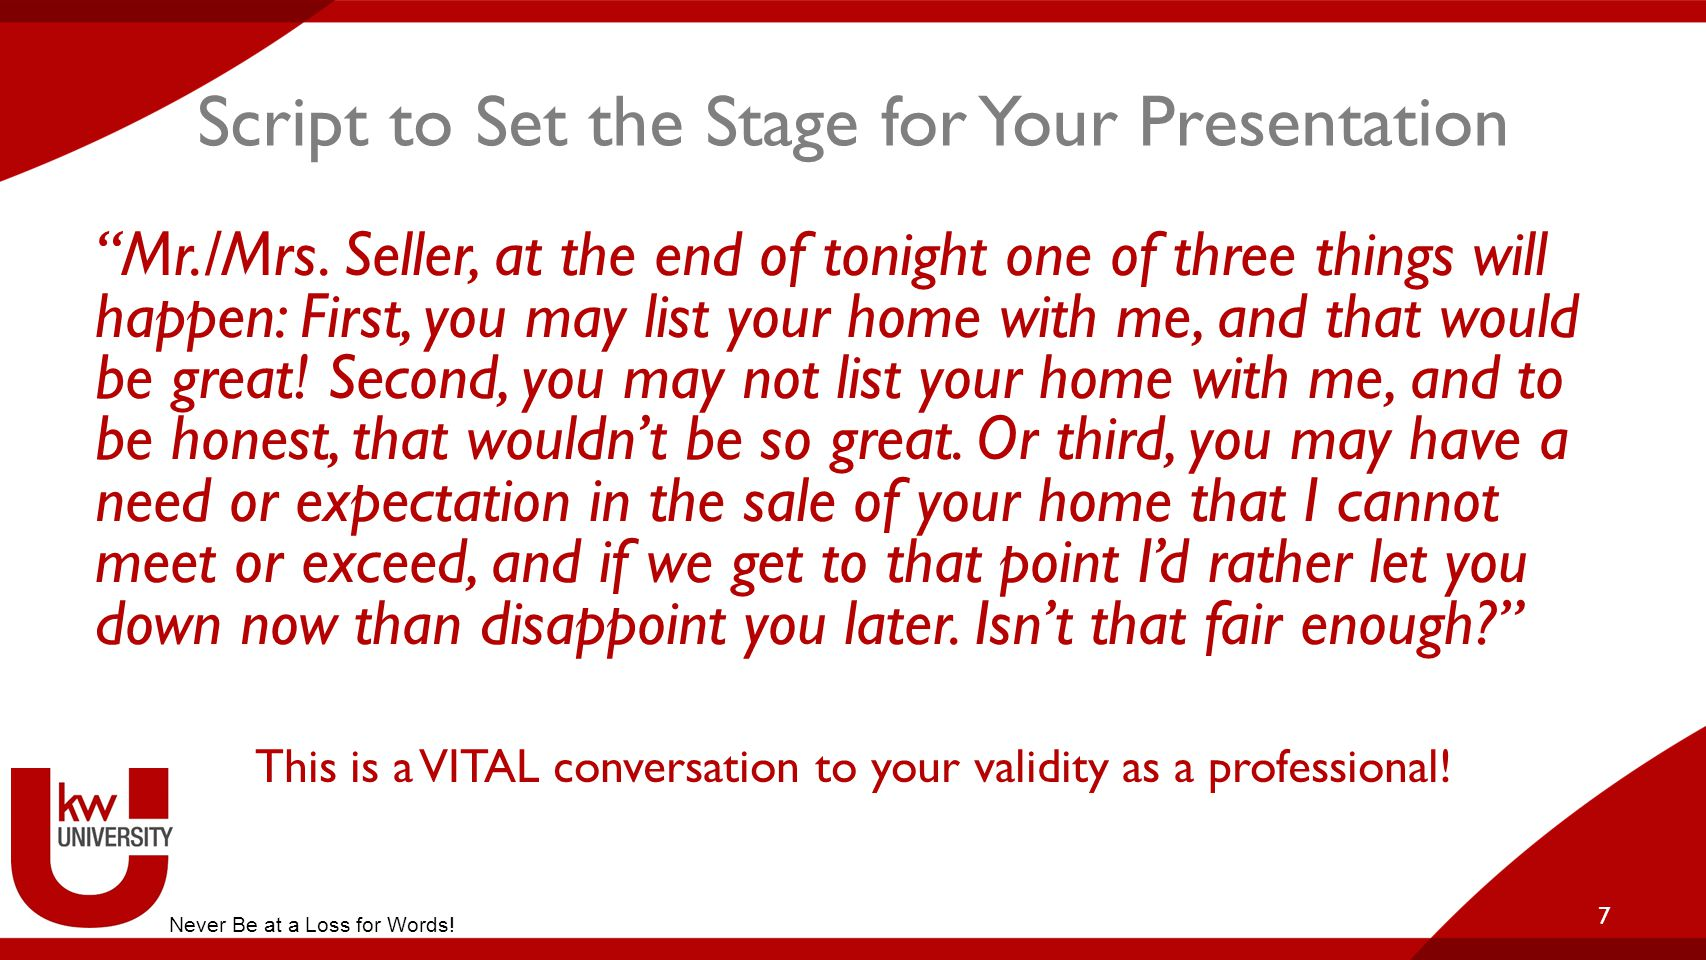 Script to Set the Stage for Your Presentation